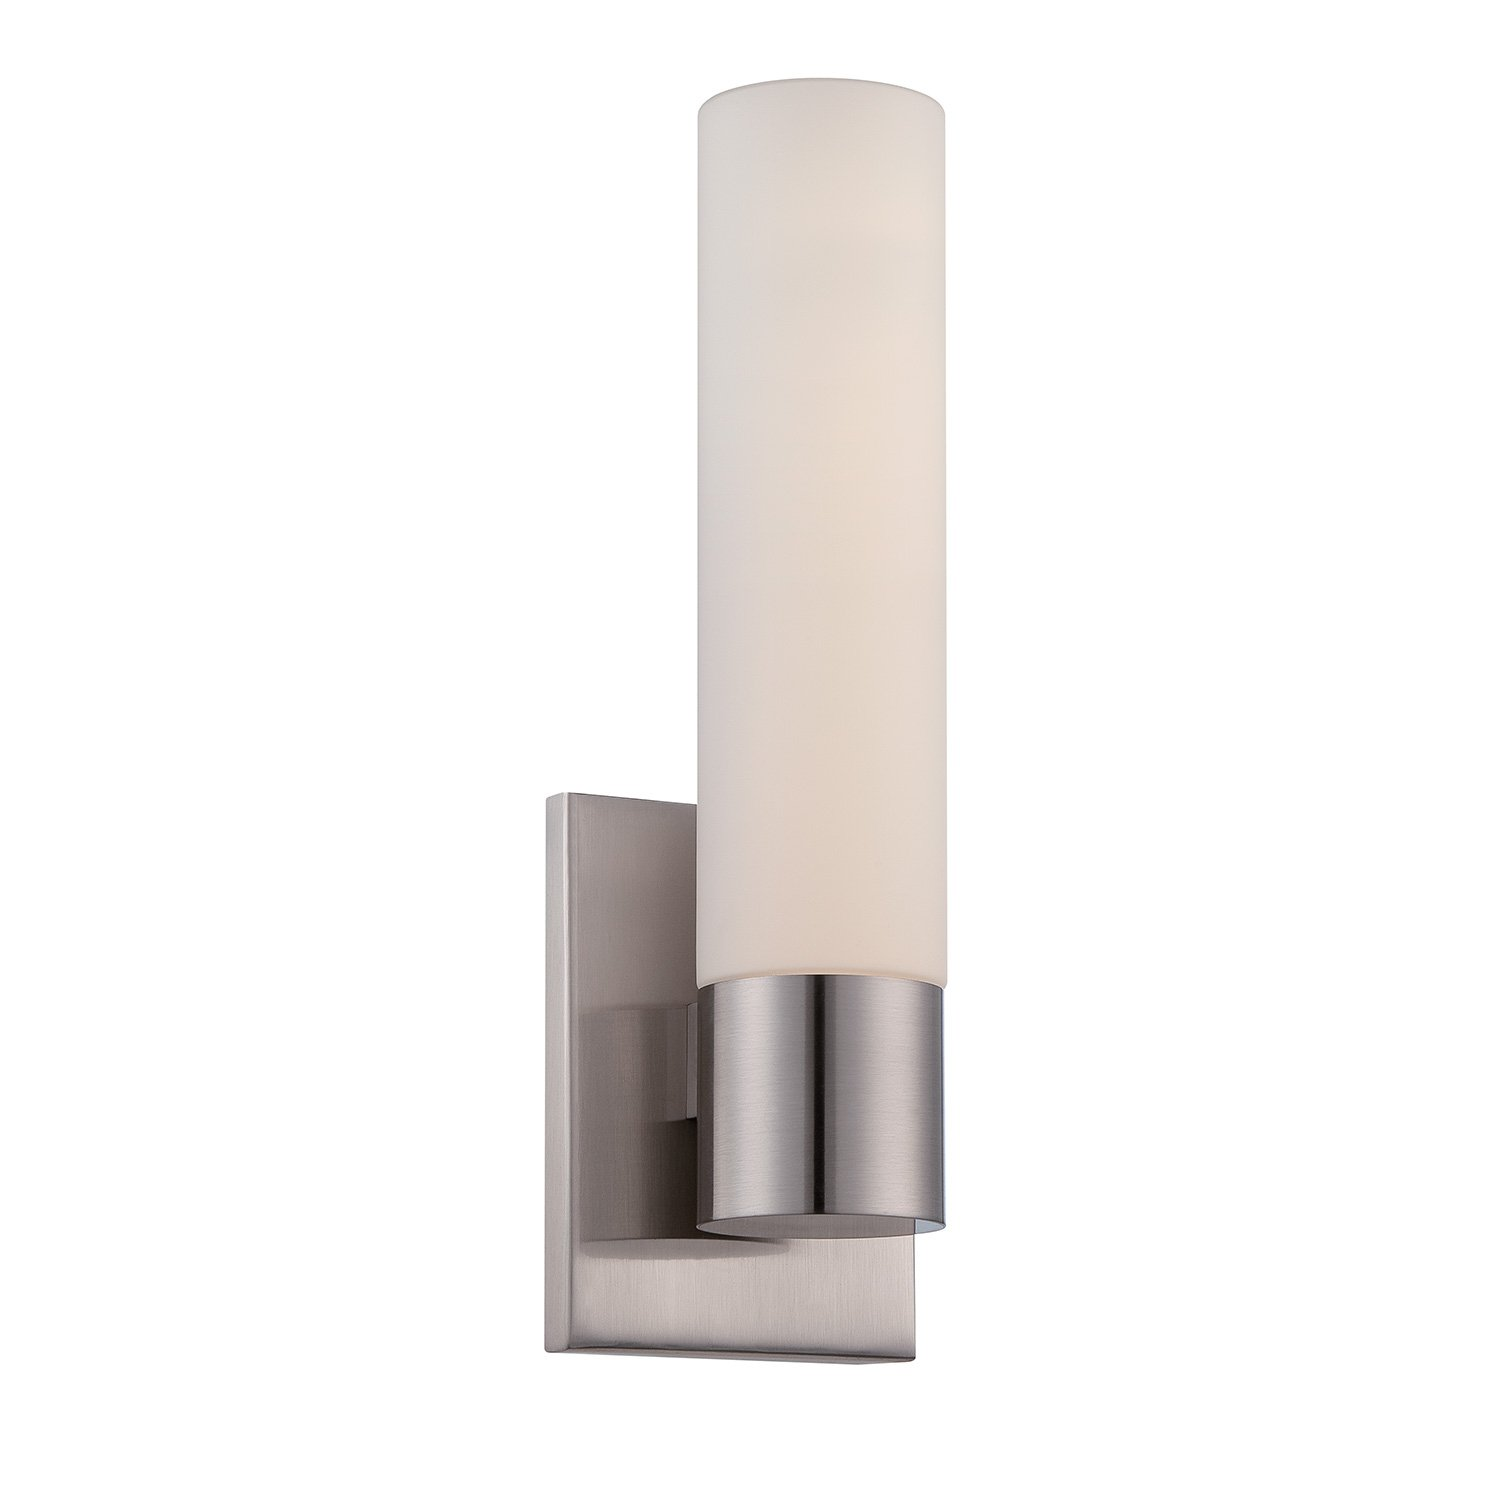 long cylinder wall lighting outdoor contemporary fixture inside light modern sconce sconces